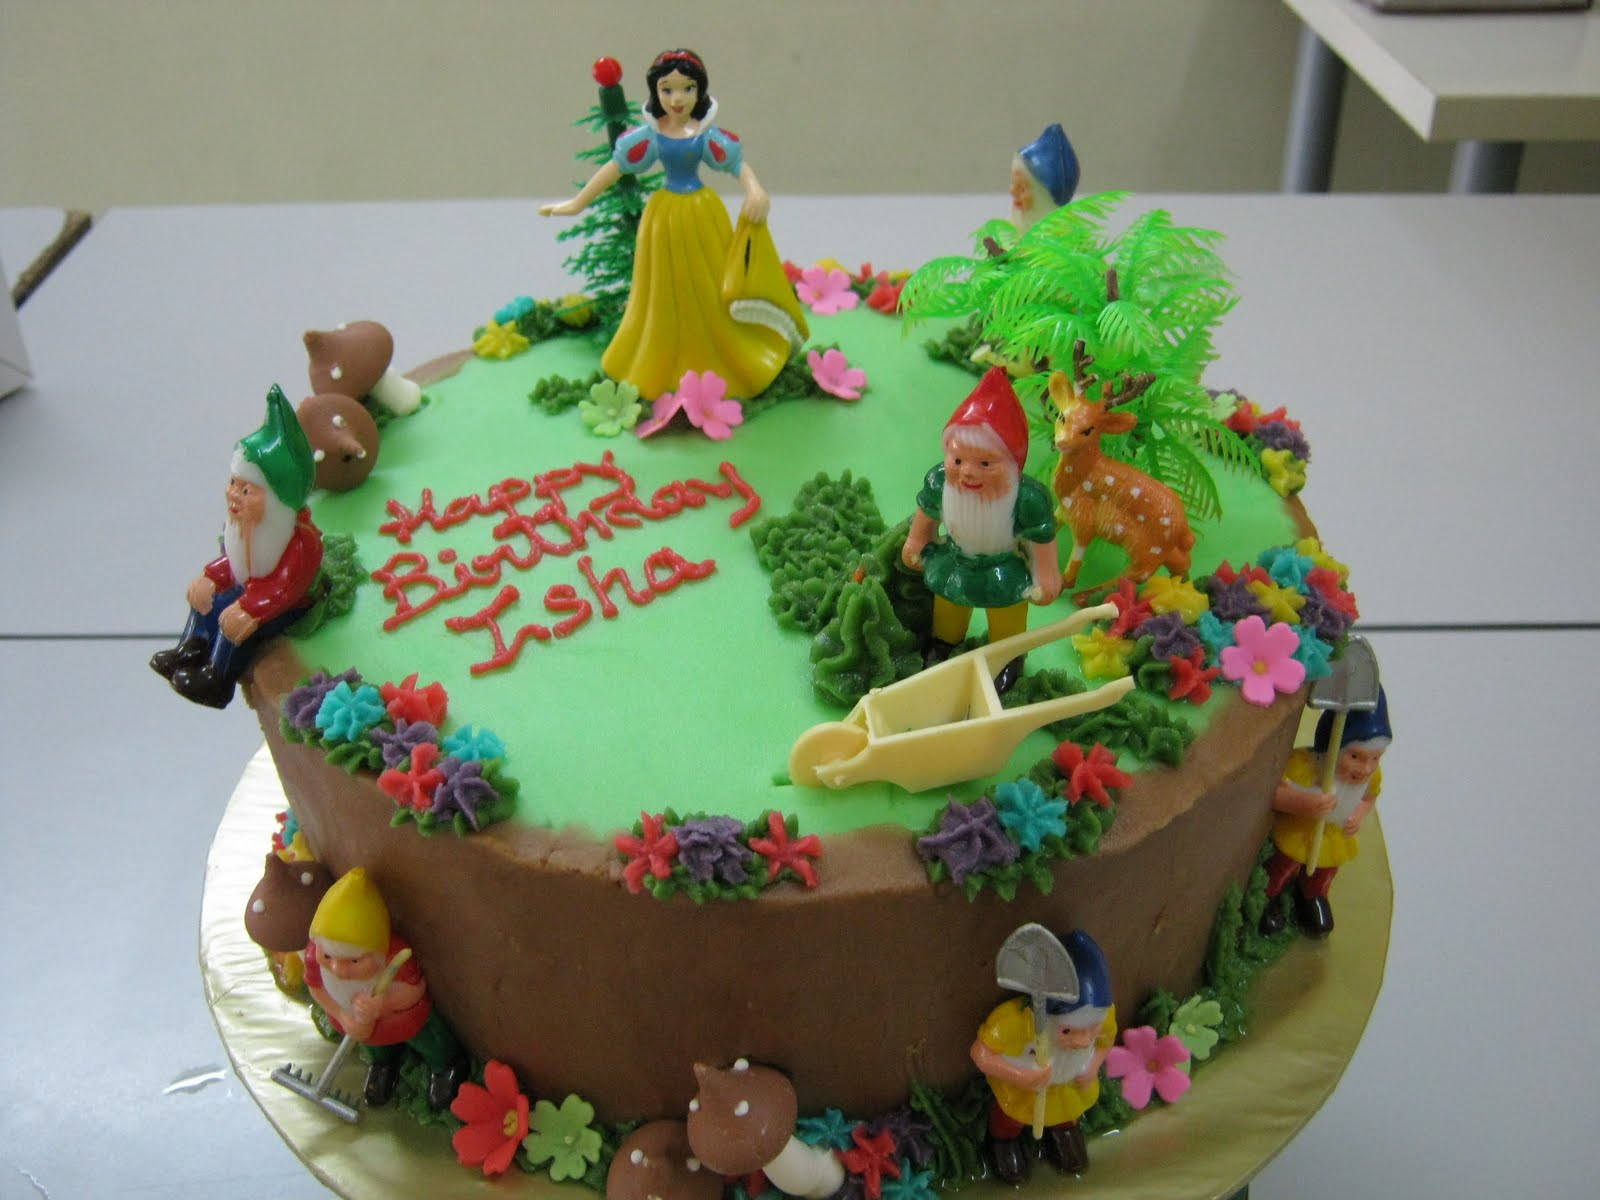 Creative Baking Snow White And The Seven Dwarfs